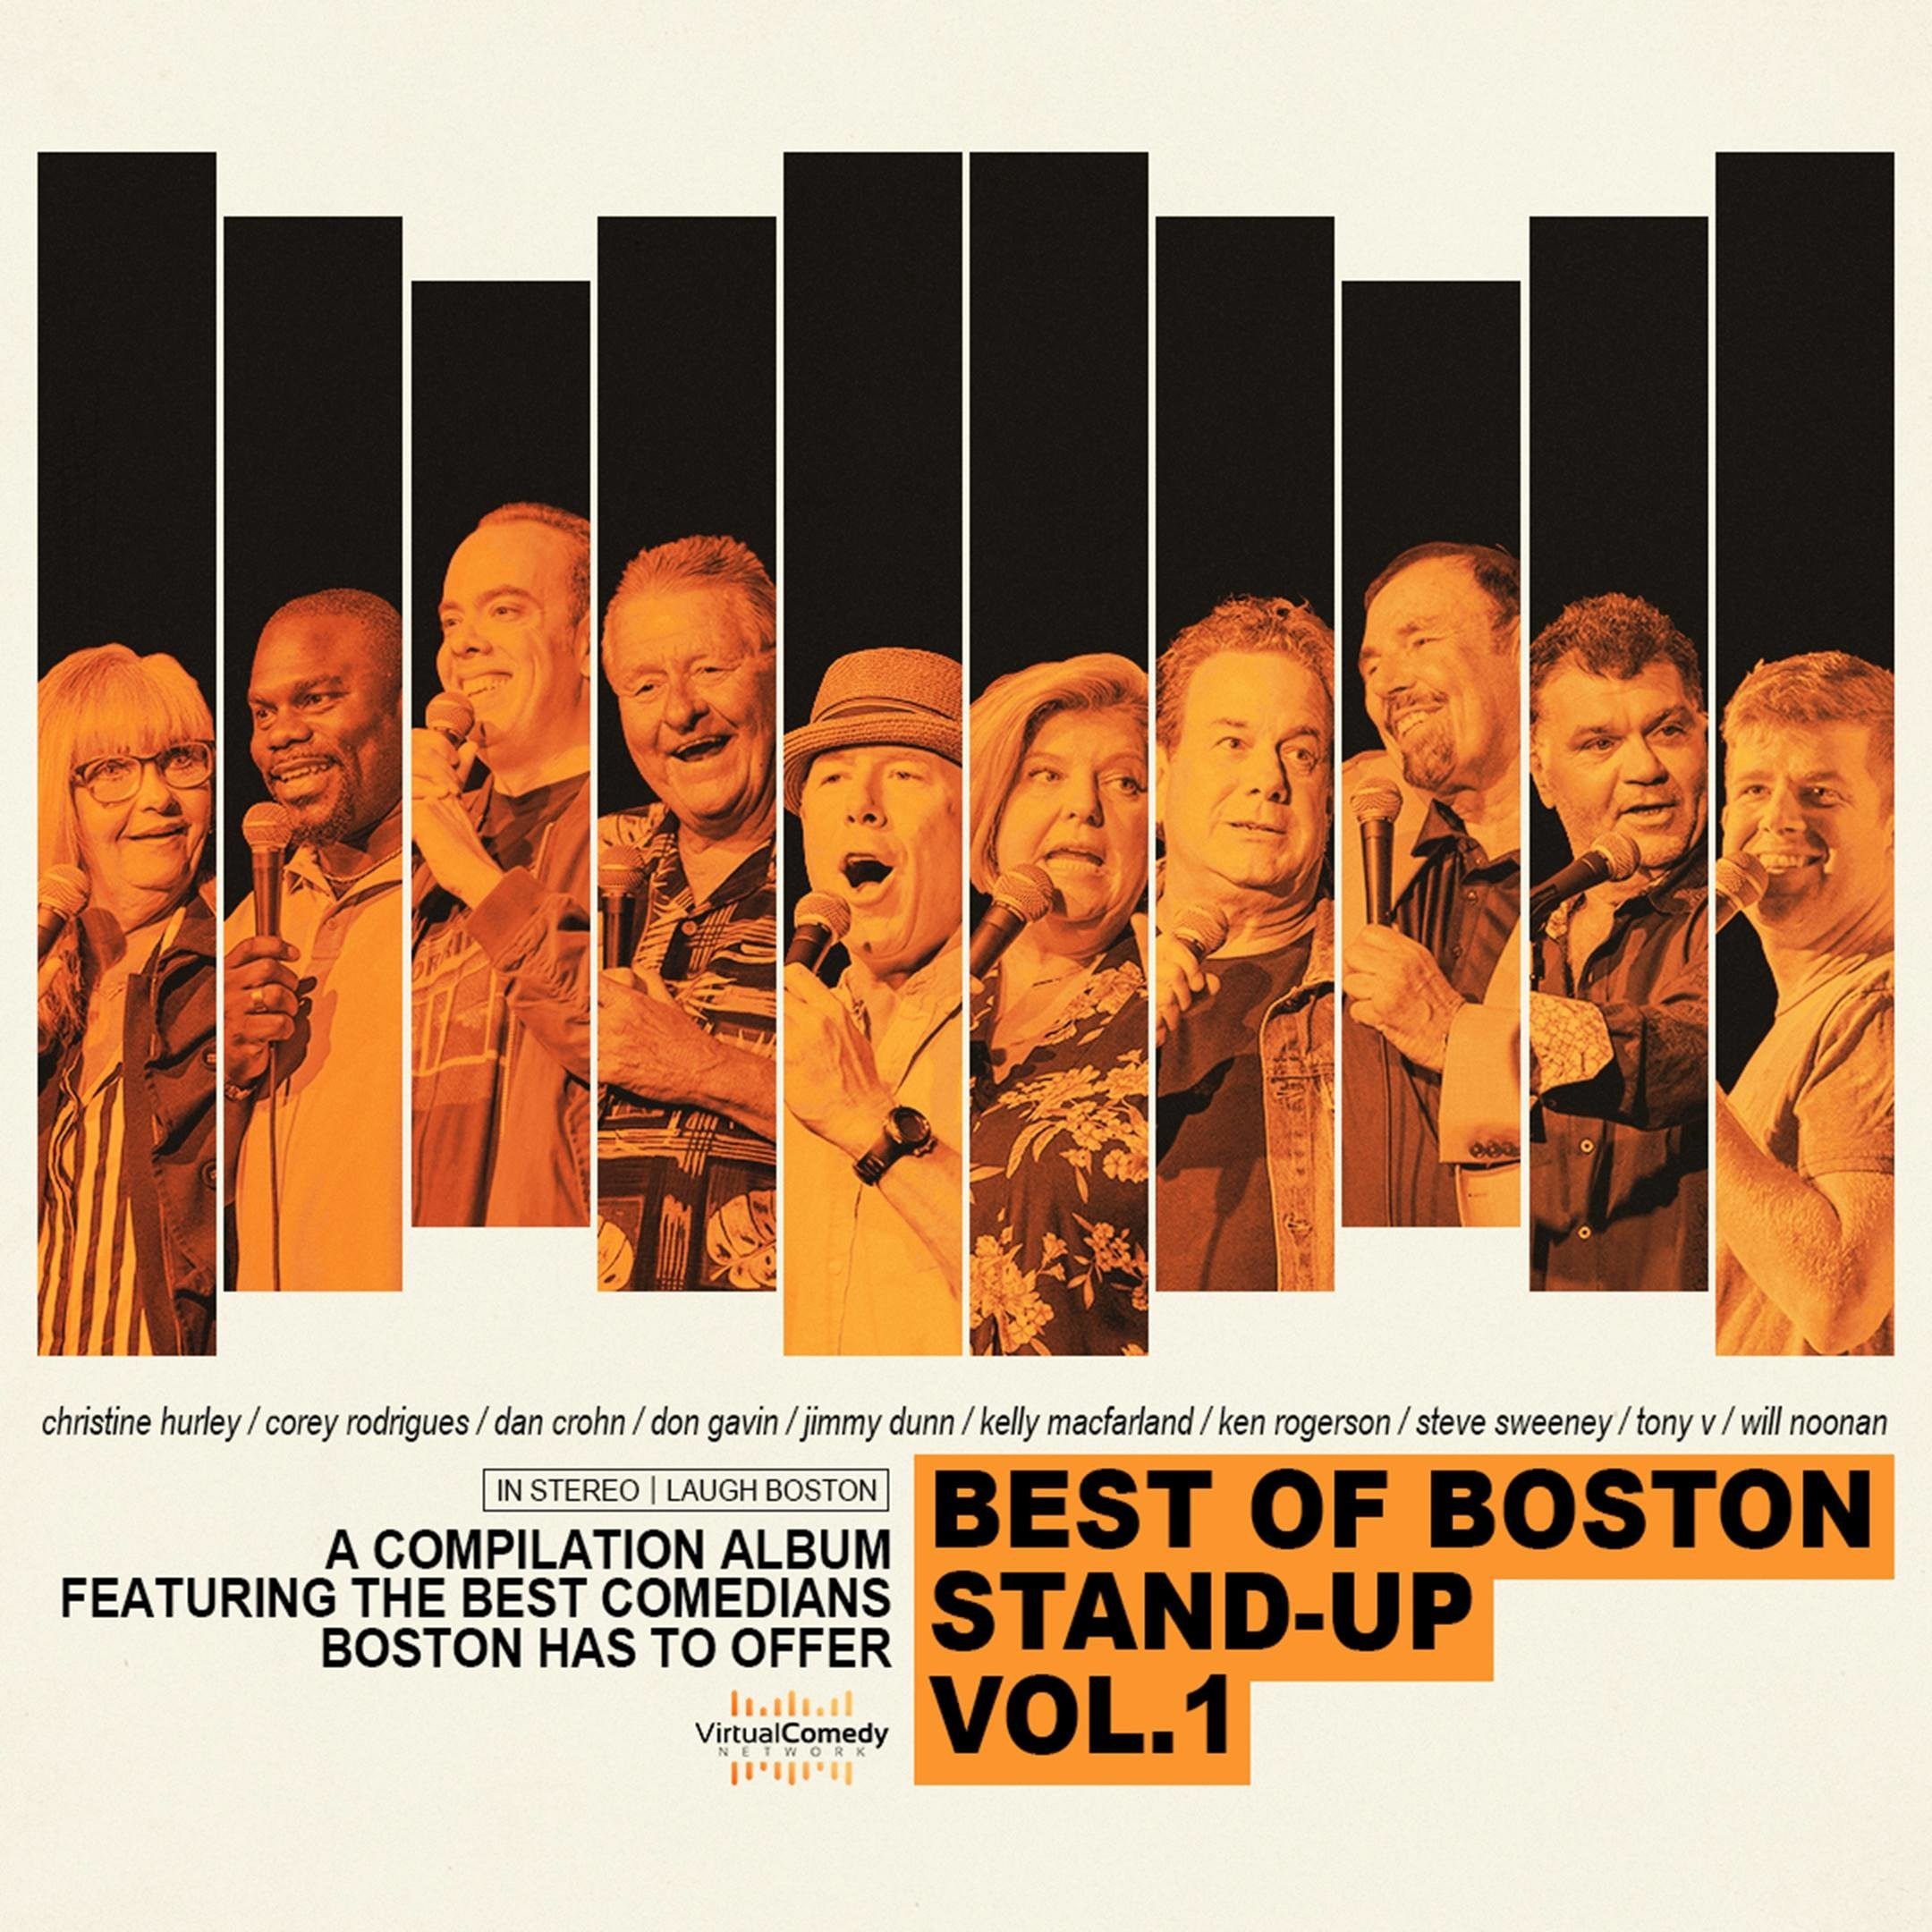 Boston's Best Comedians Come Together for All-star Album